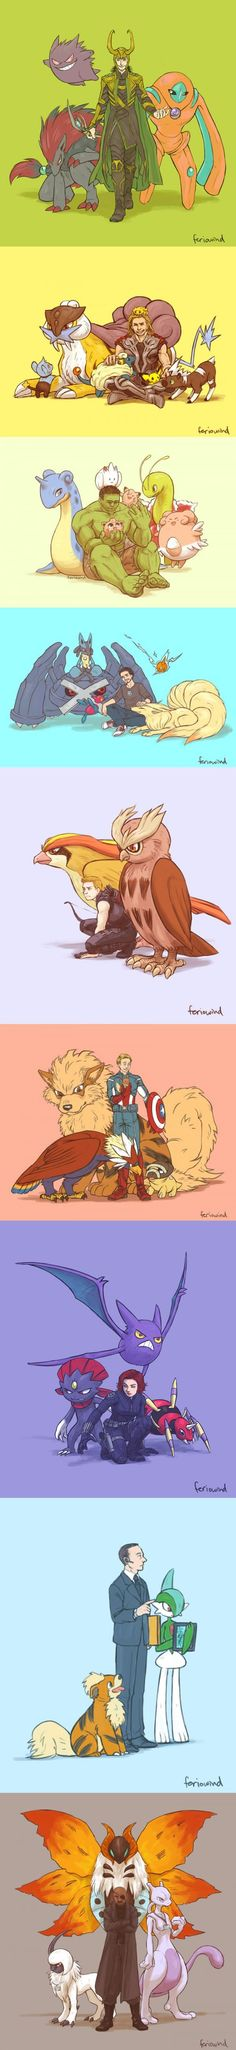 If the Avengers had Pokemons